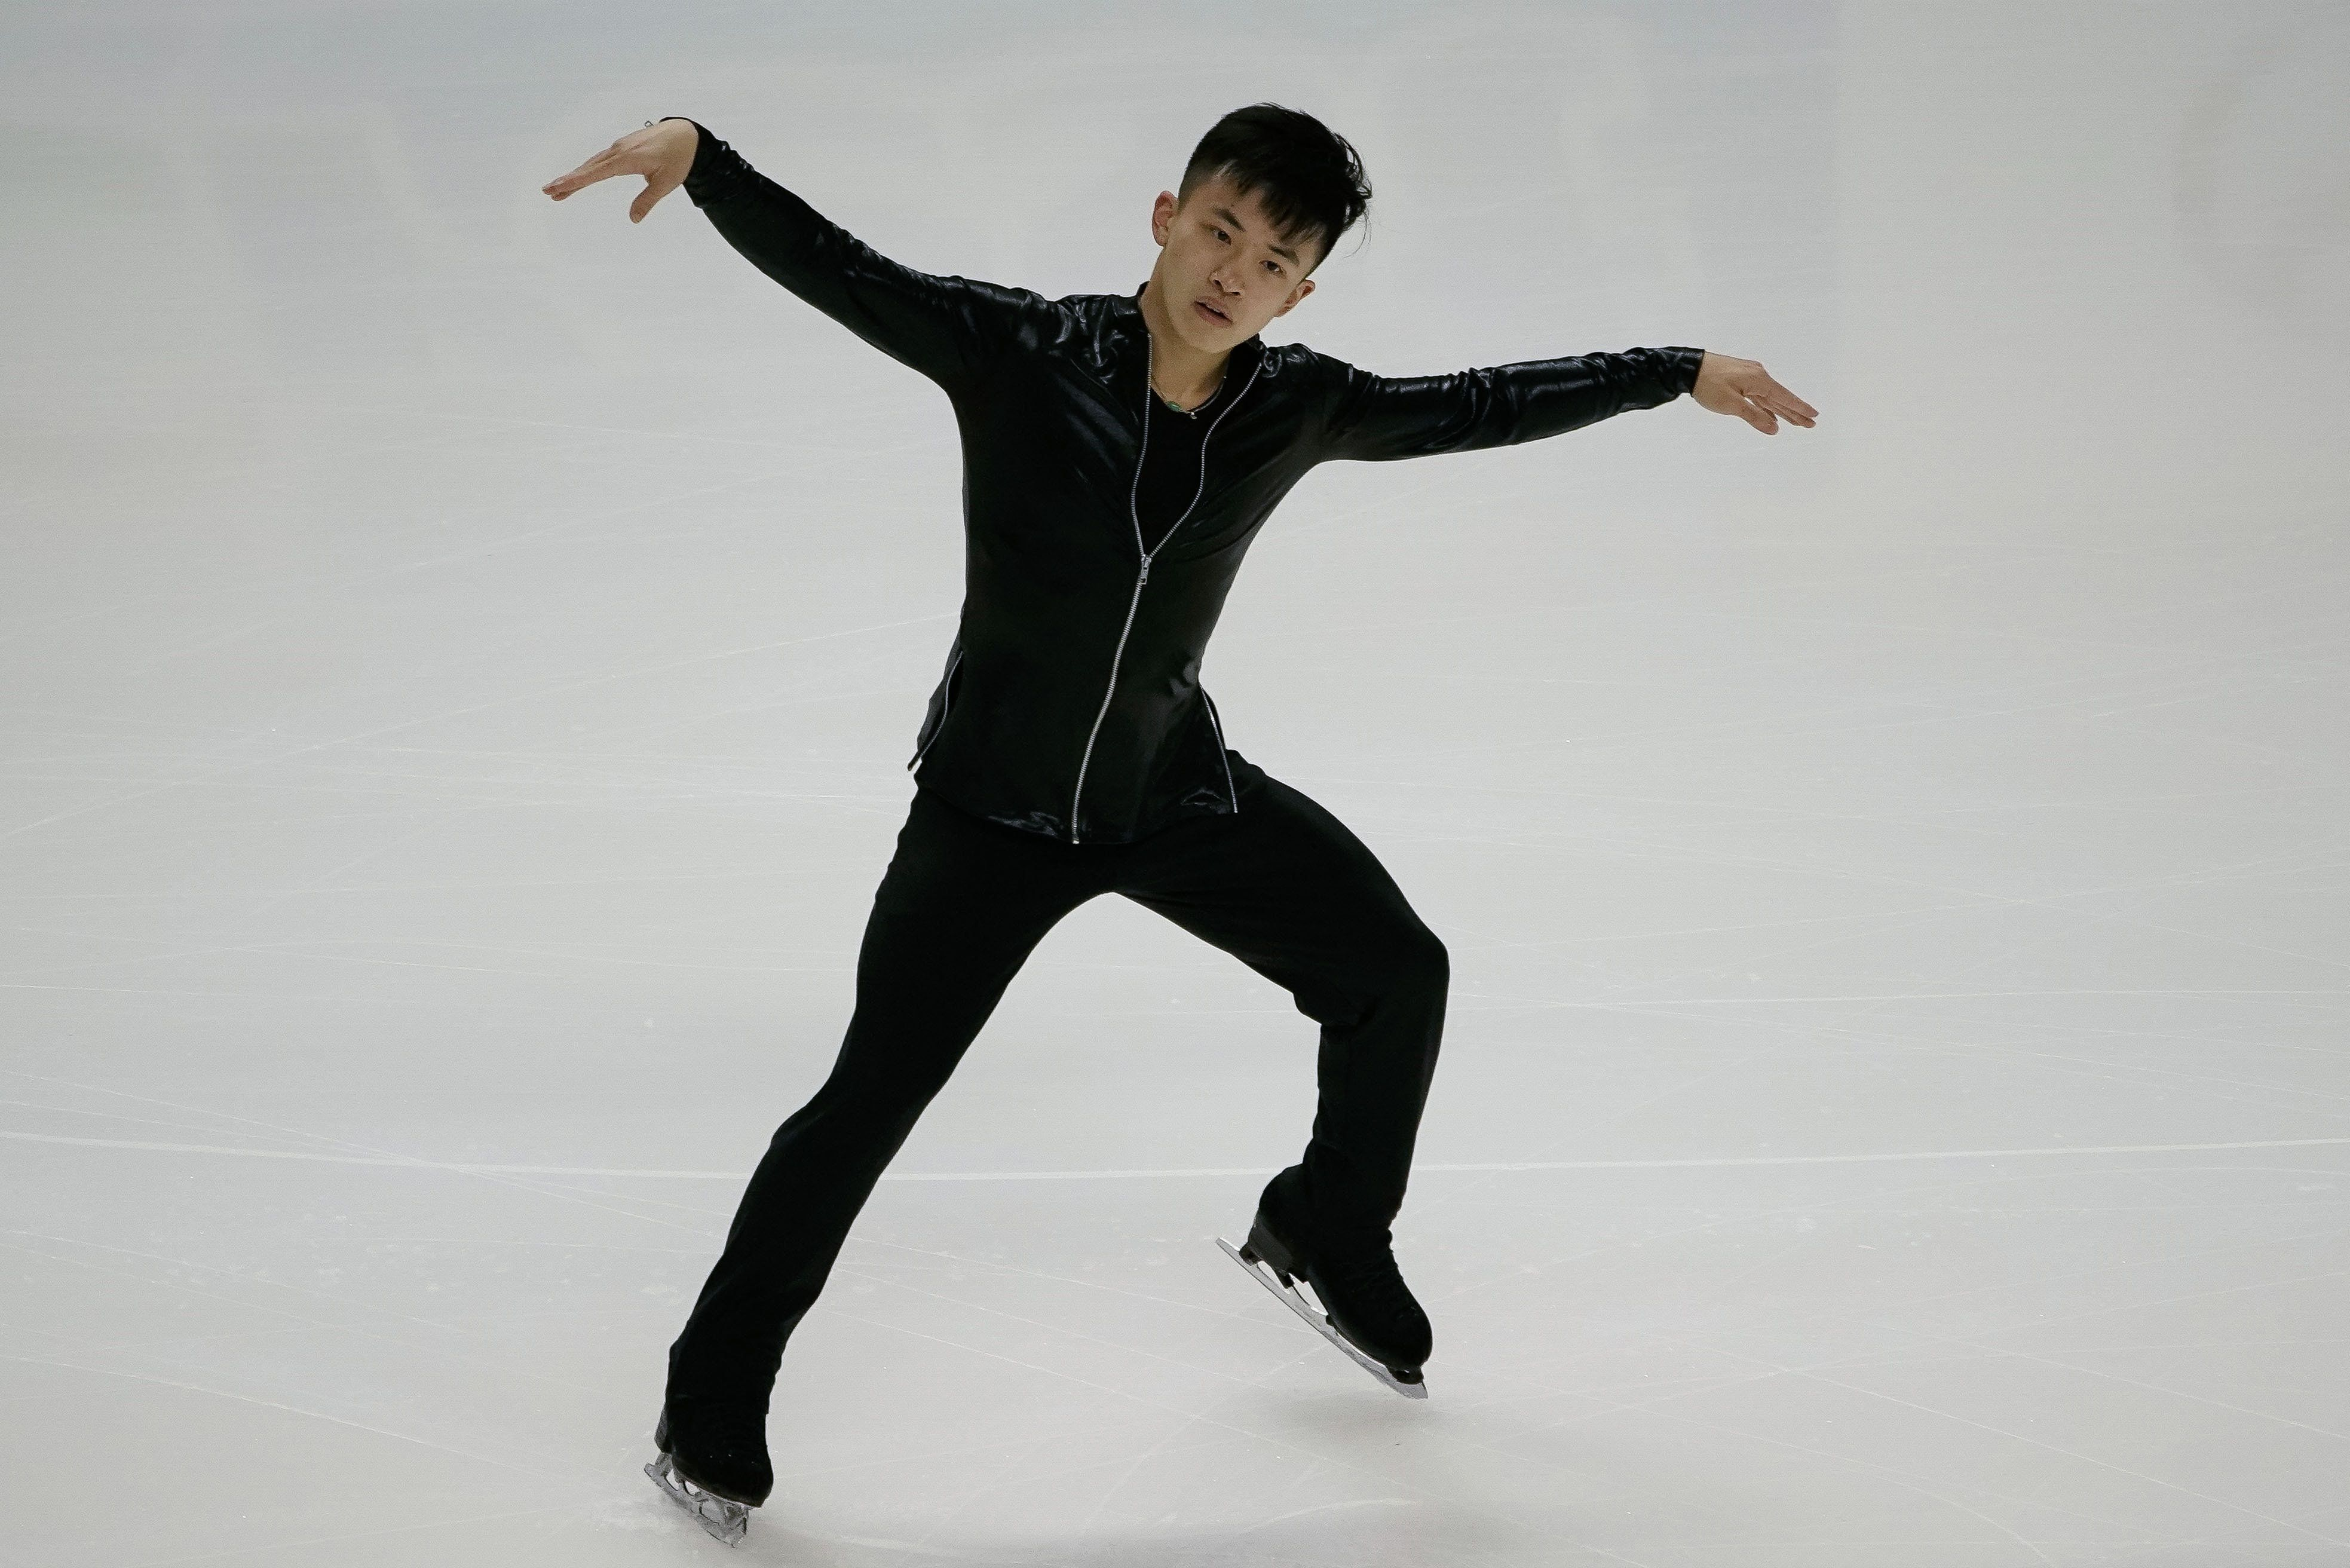 Jan 4, 2018; San Jose, CA, USA; Jimmy Ma performs in the mens short program during the 2018 U.S. Figure Skating Championships at SAP Center.  Mandatory Credit: Stan Szeto-USA TODAY Sports